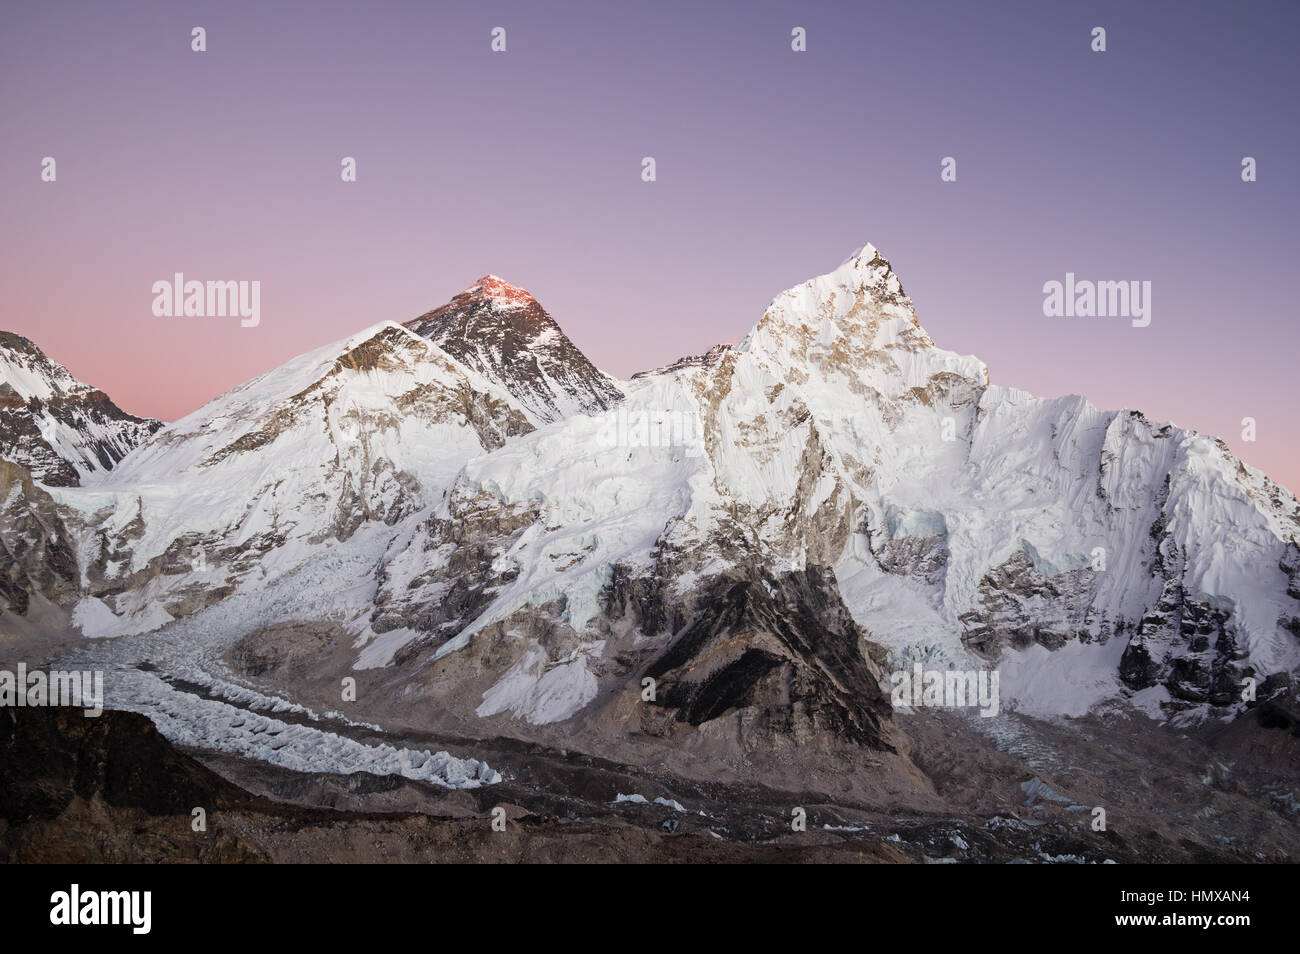 Mount Everest and Nuptse seen from Kala Patthar just after sunset with purple sky - Stock Image